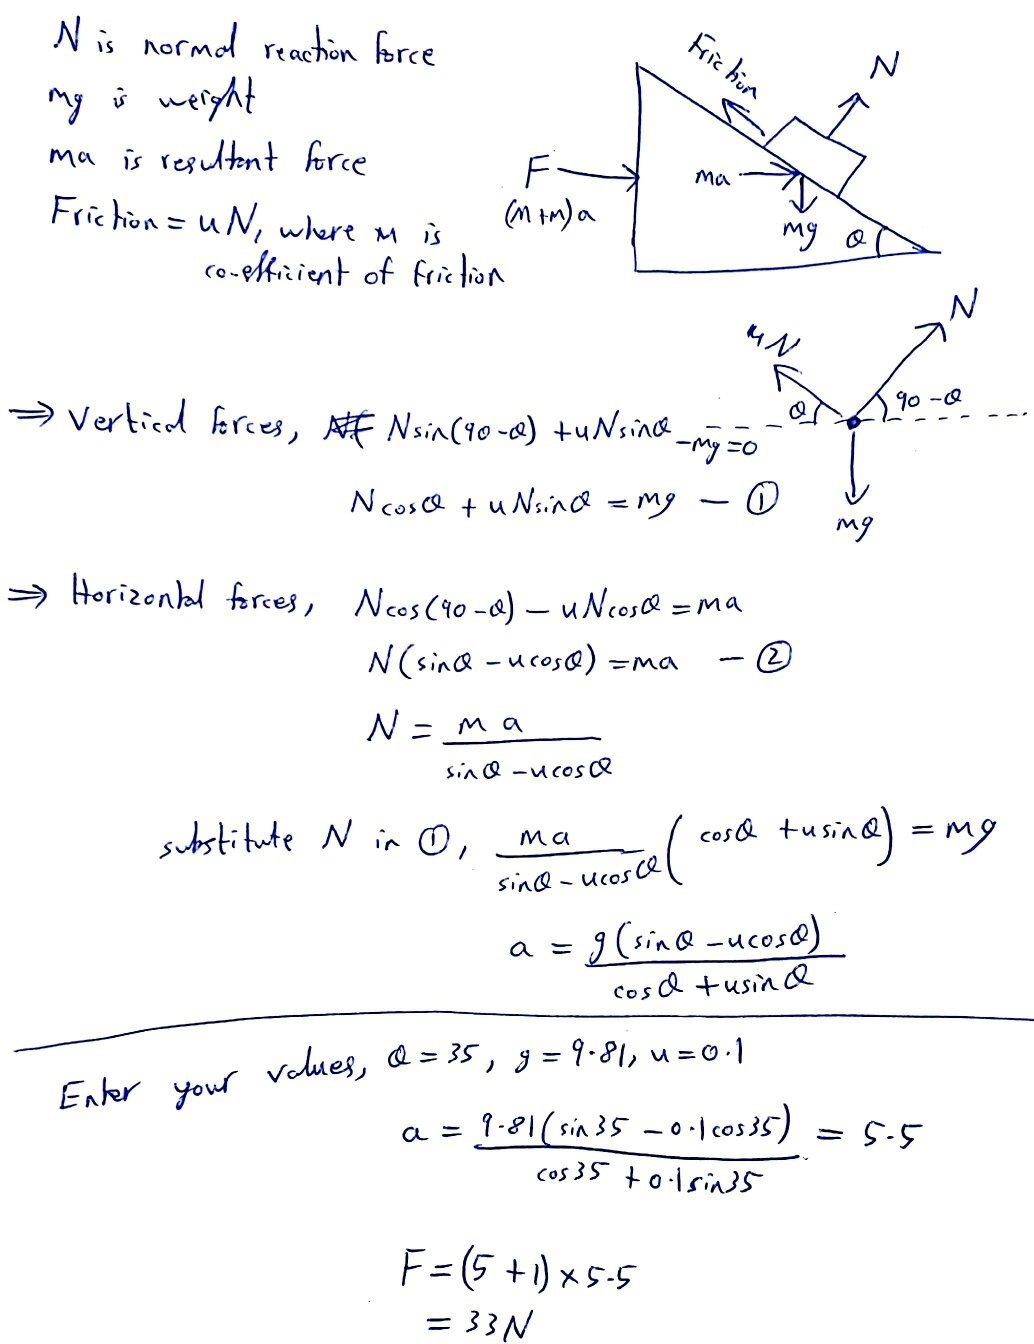 How To Solve This System Of Bodies Problem Quora Drawing The Frictional Force On A Free Body Diagram Draw Block Showing All Vertical And Horizontal Forces Should Be Balanced While Resultant